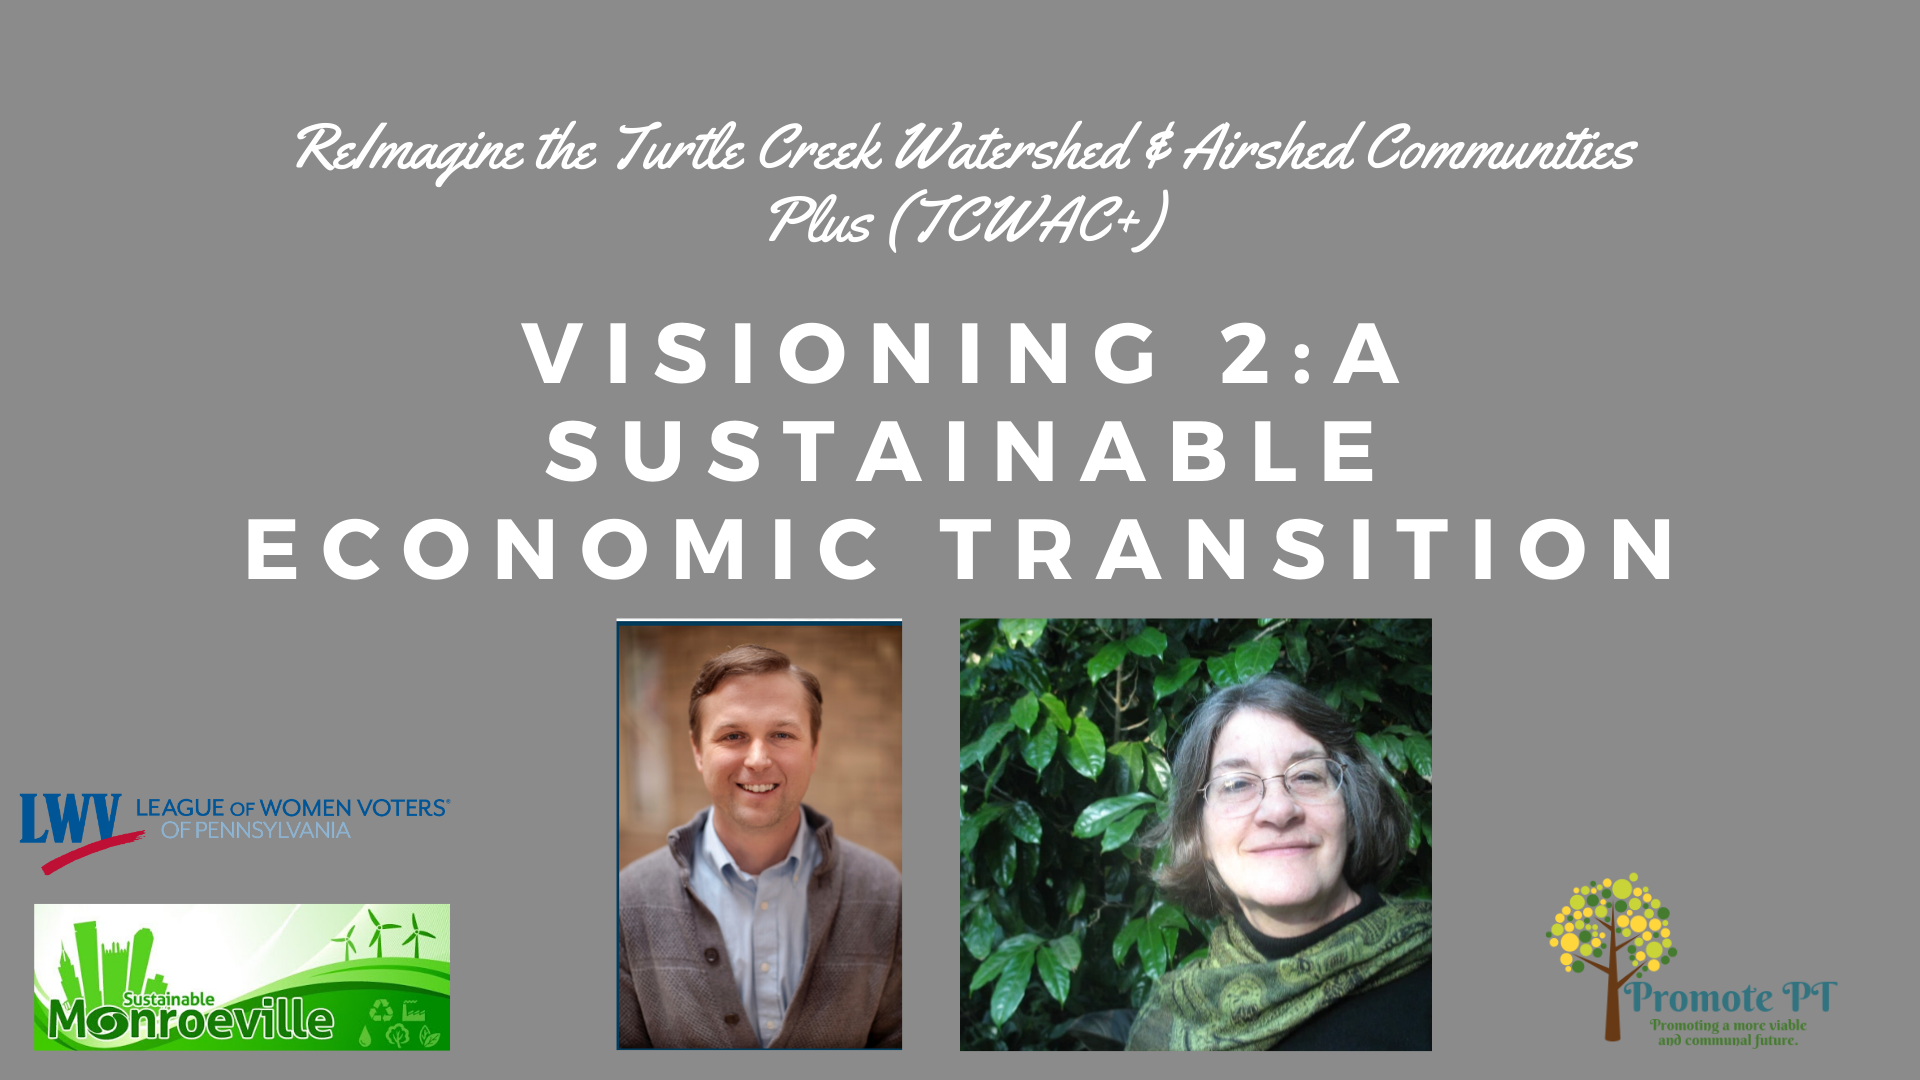 Visioning 2: A Sustainable Economic Transition